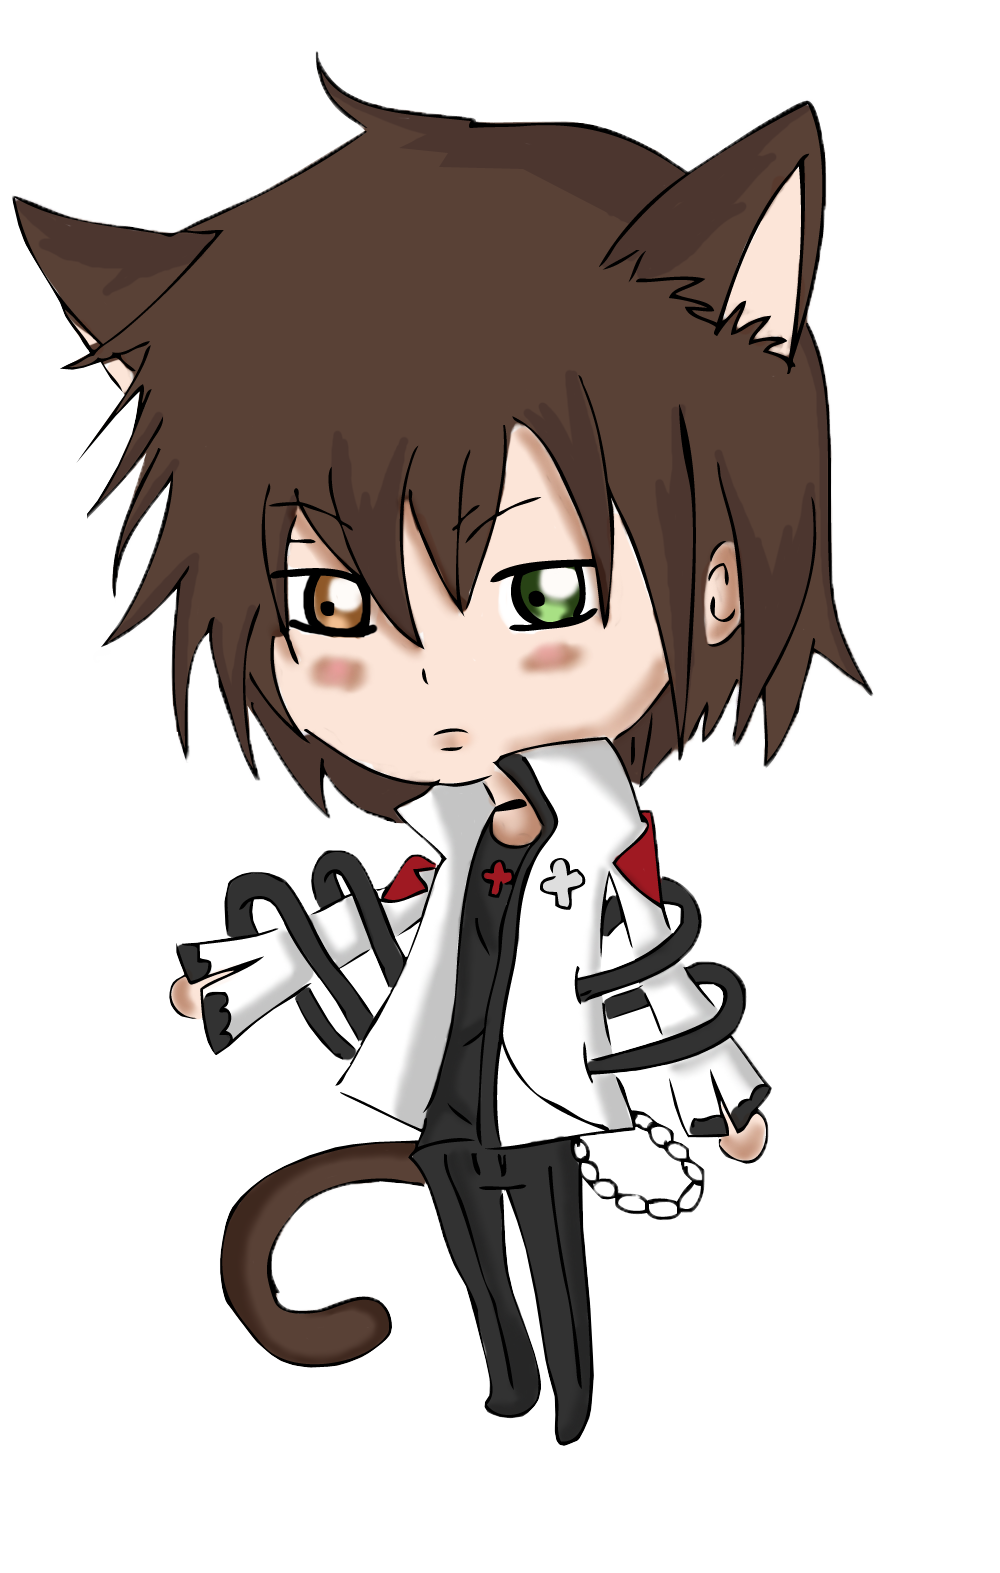 Images for chibi with. Kawaii boy png template svg